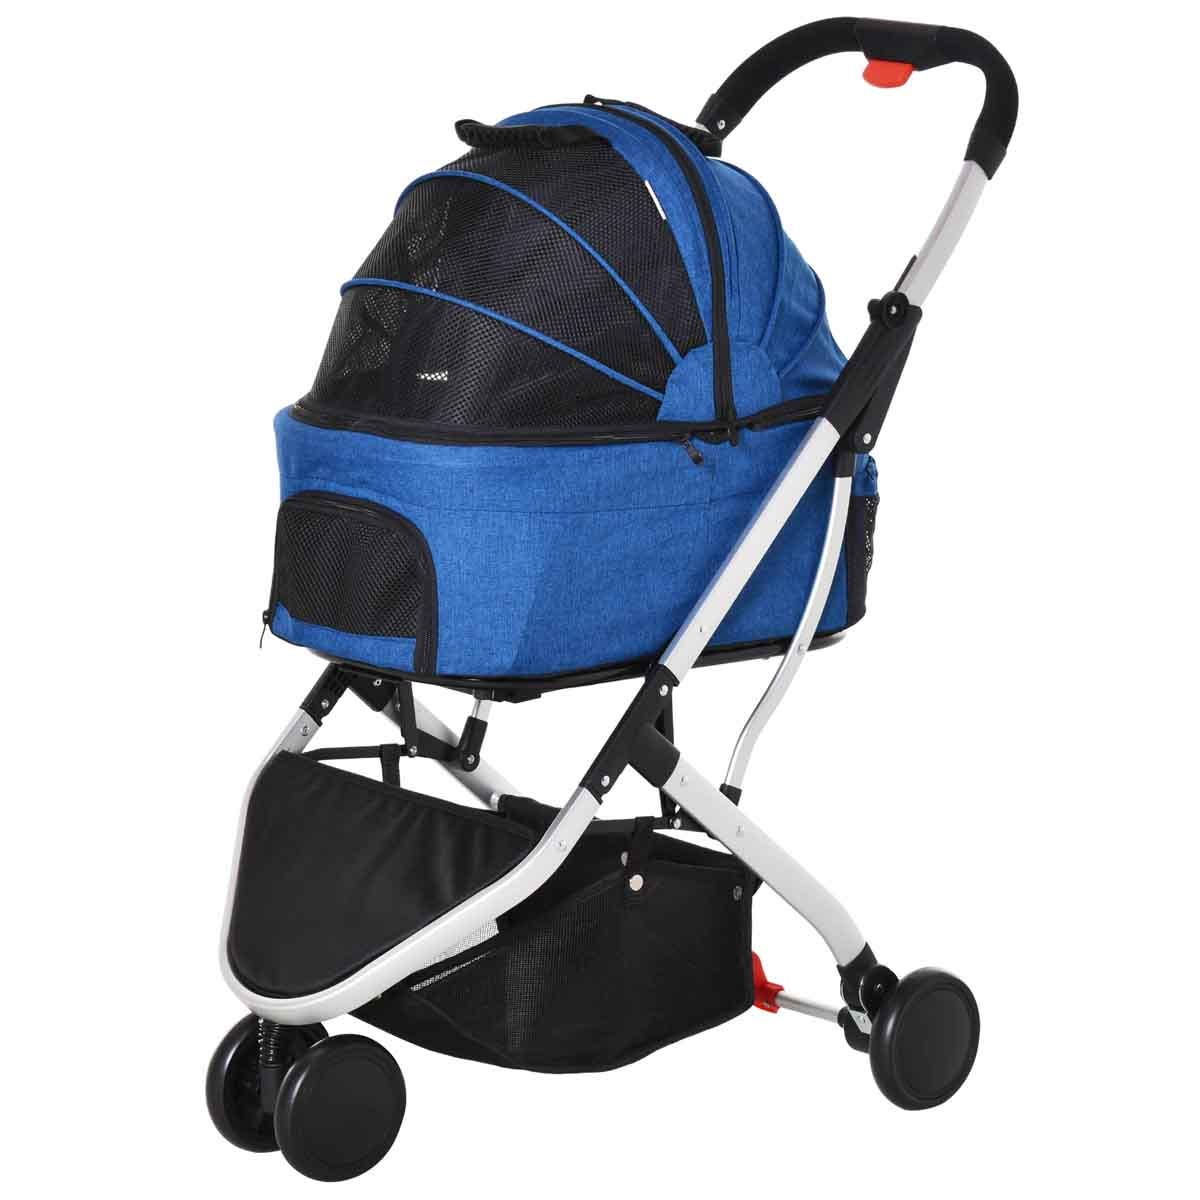 PawHut 2-in-1 Foldable Pet Stroller/Carrying Bag - Blue